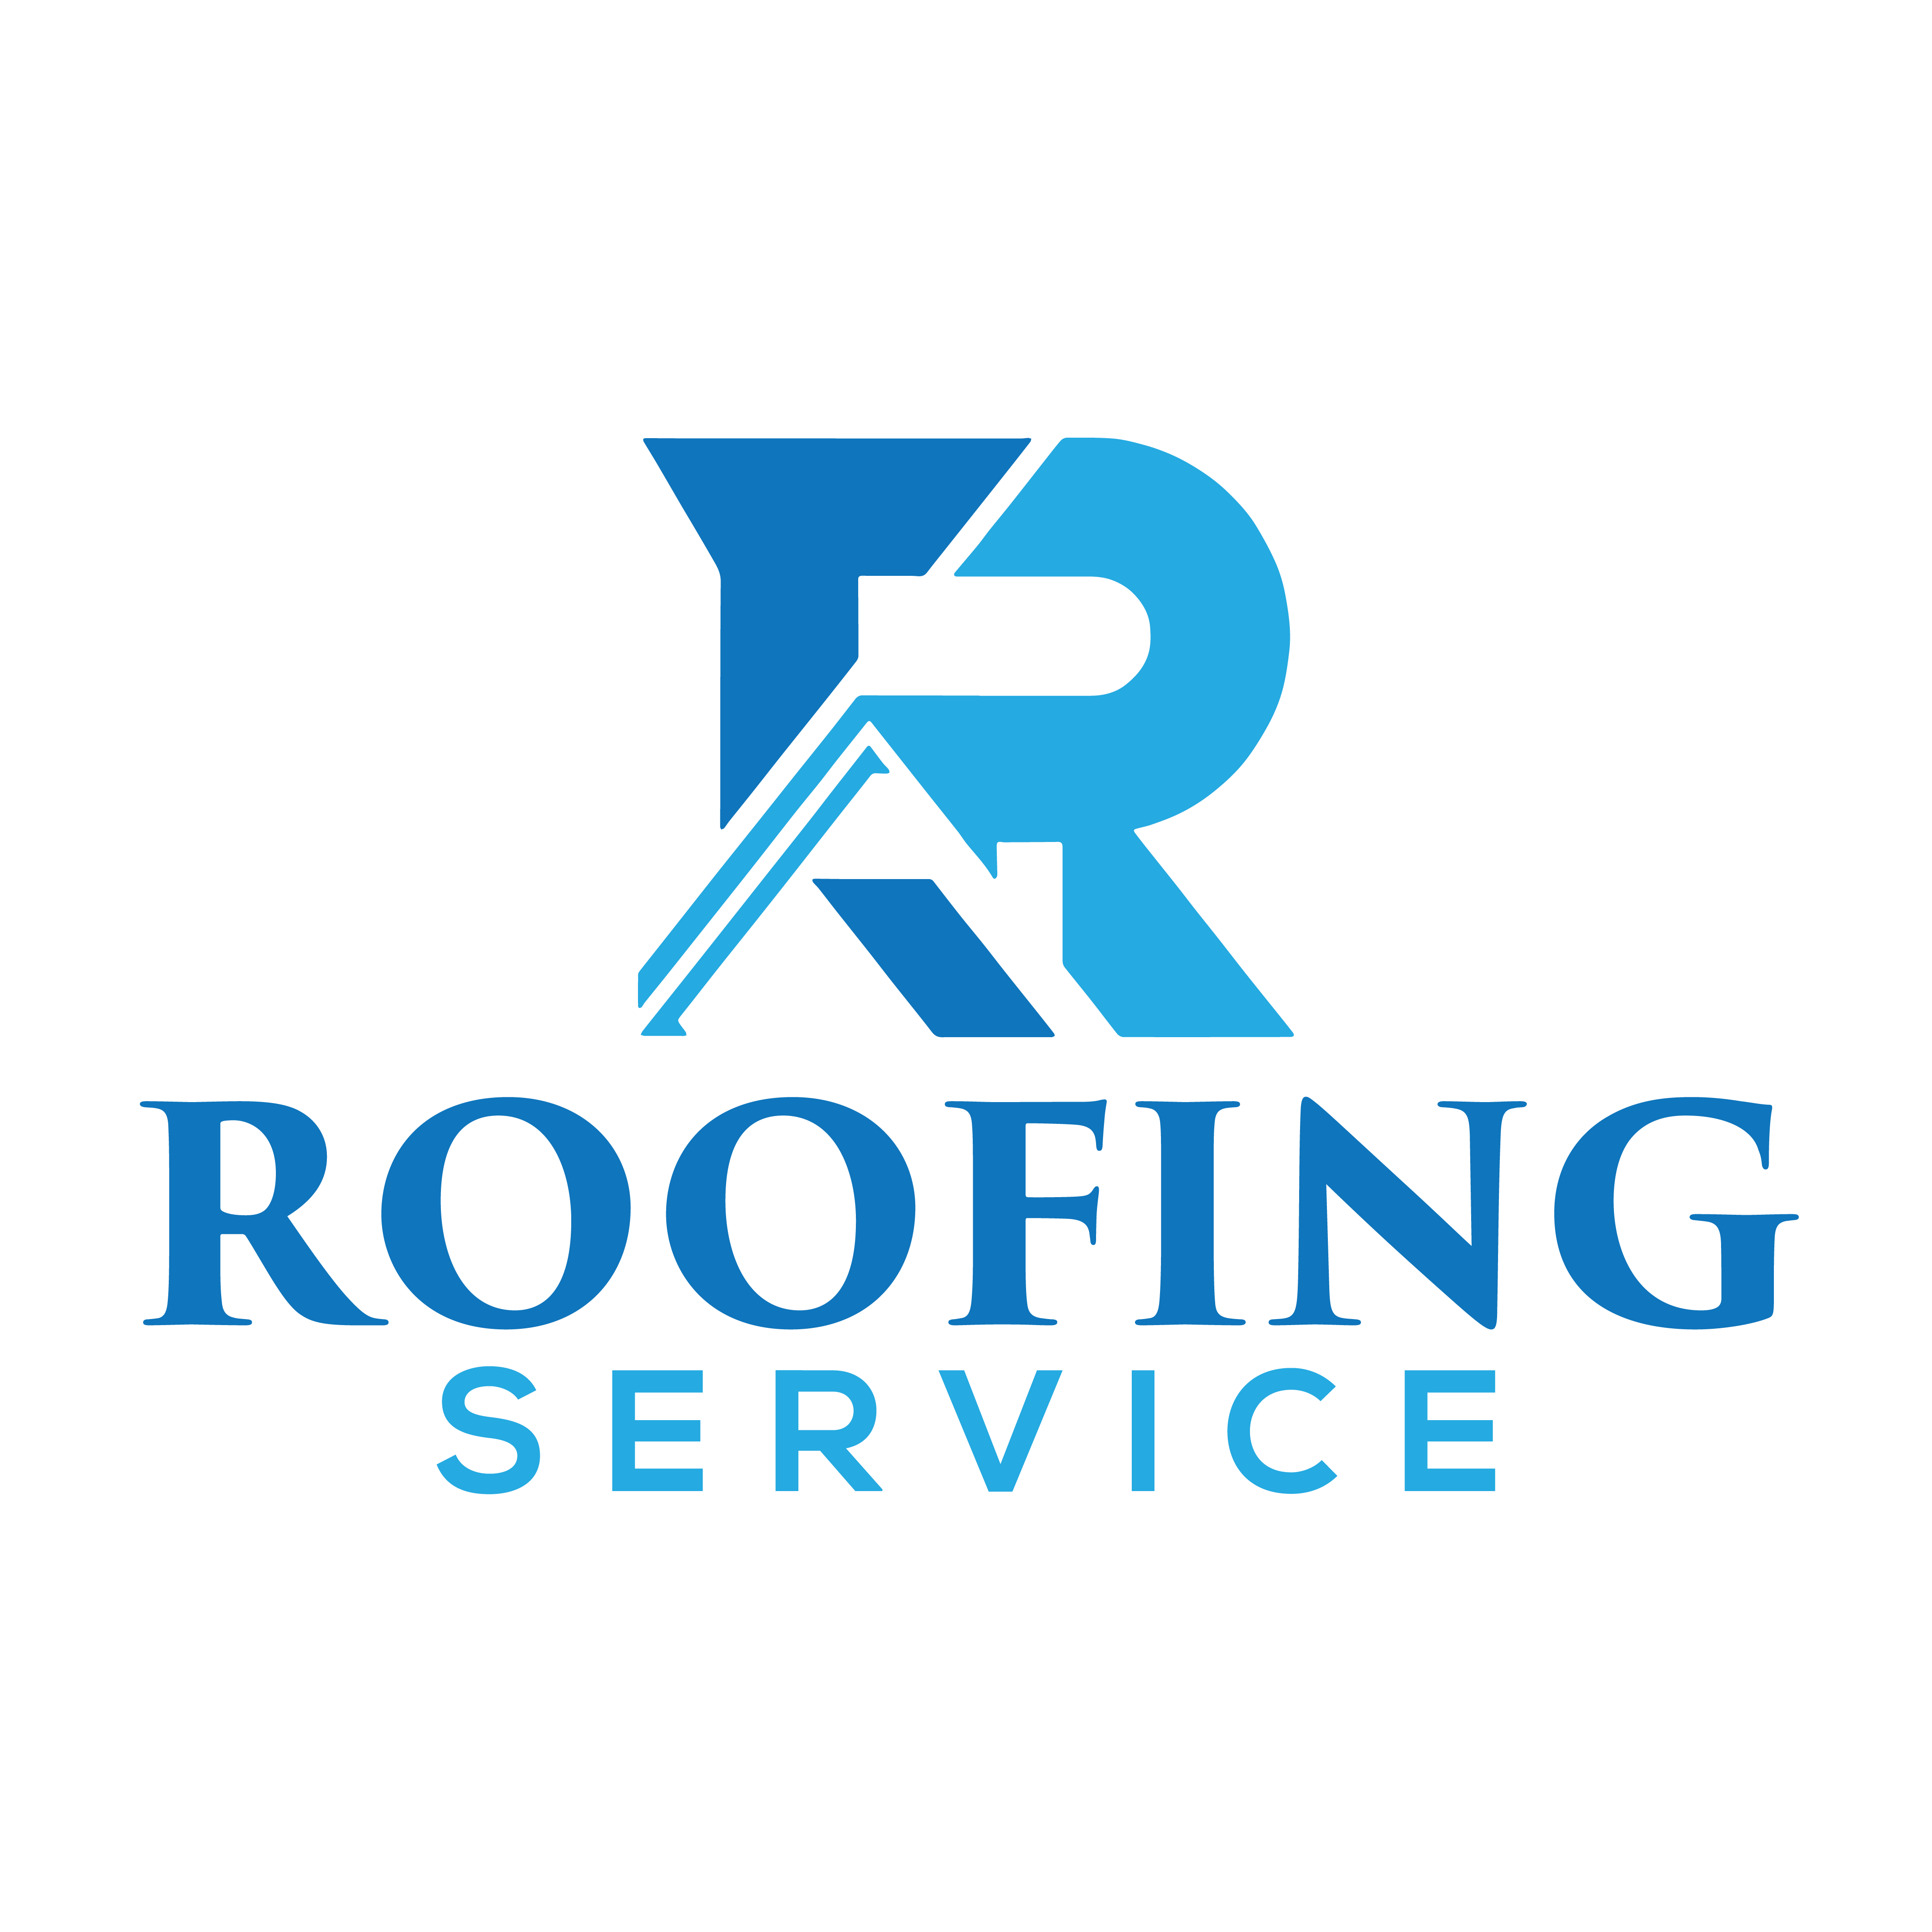 Detroit Roofing Service